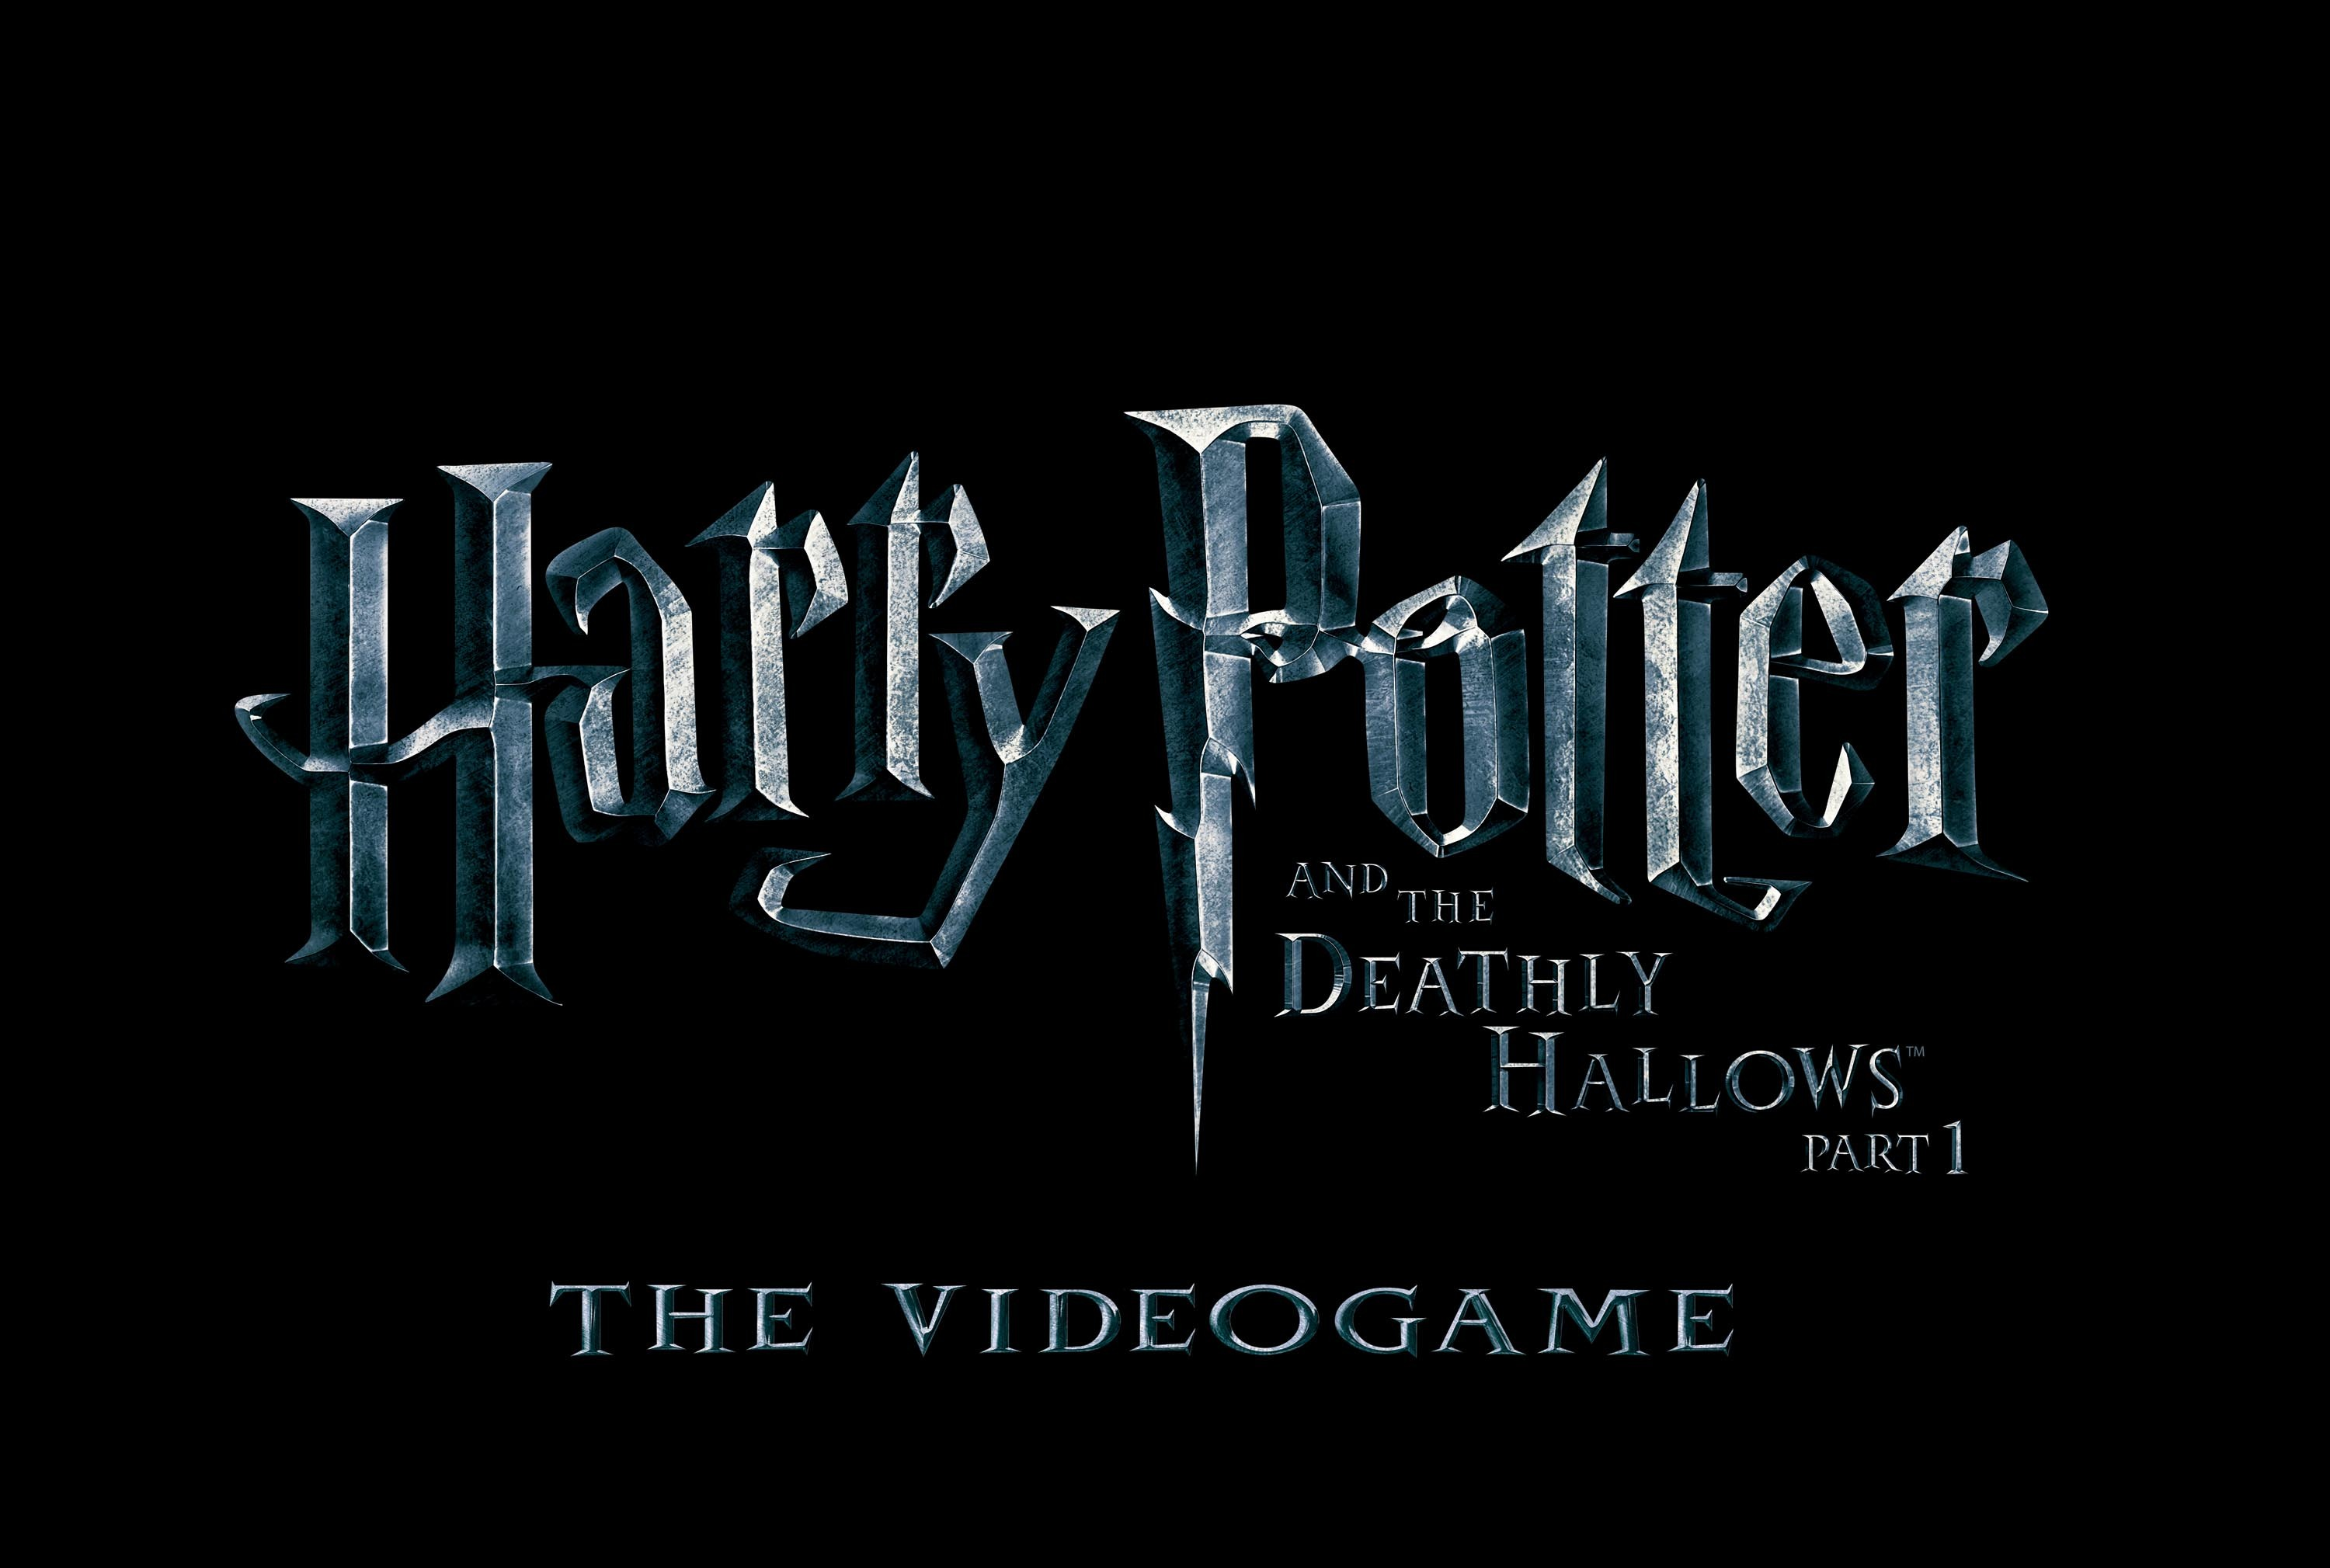 Harry Potter video games